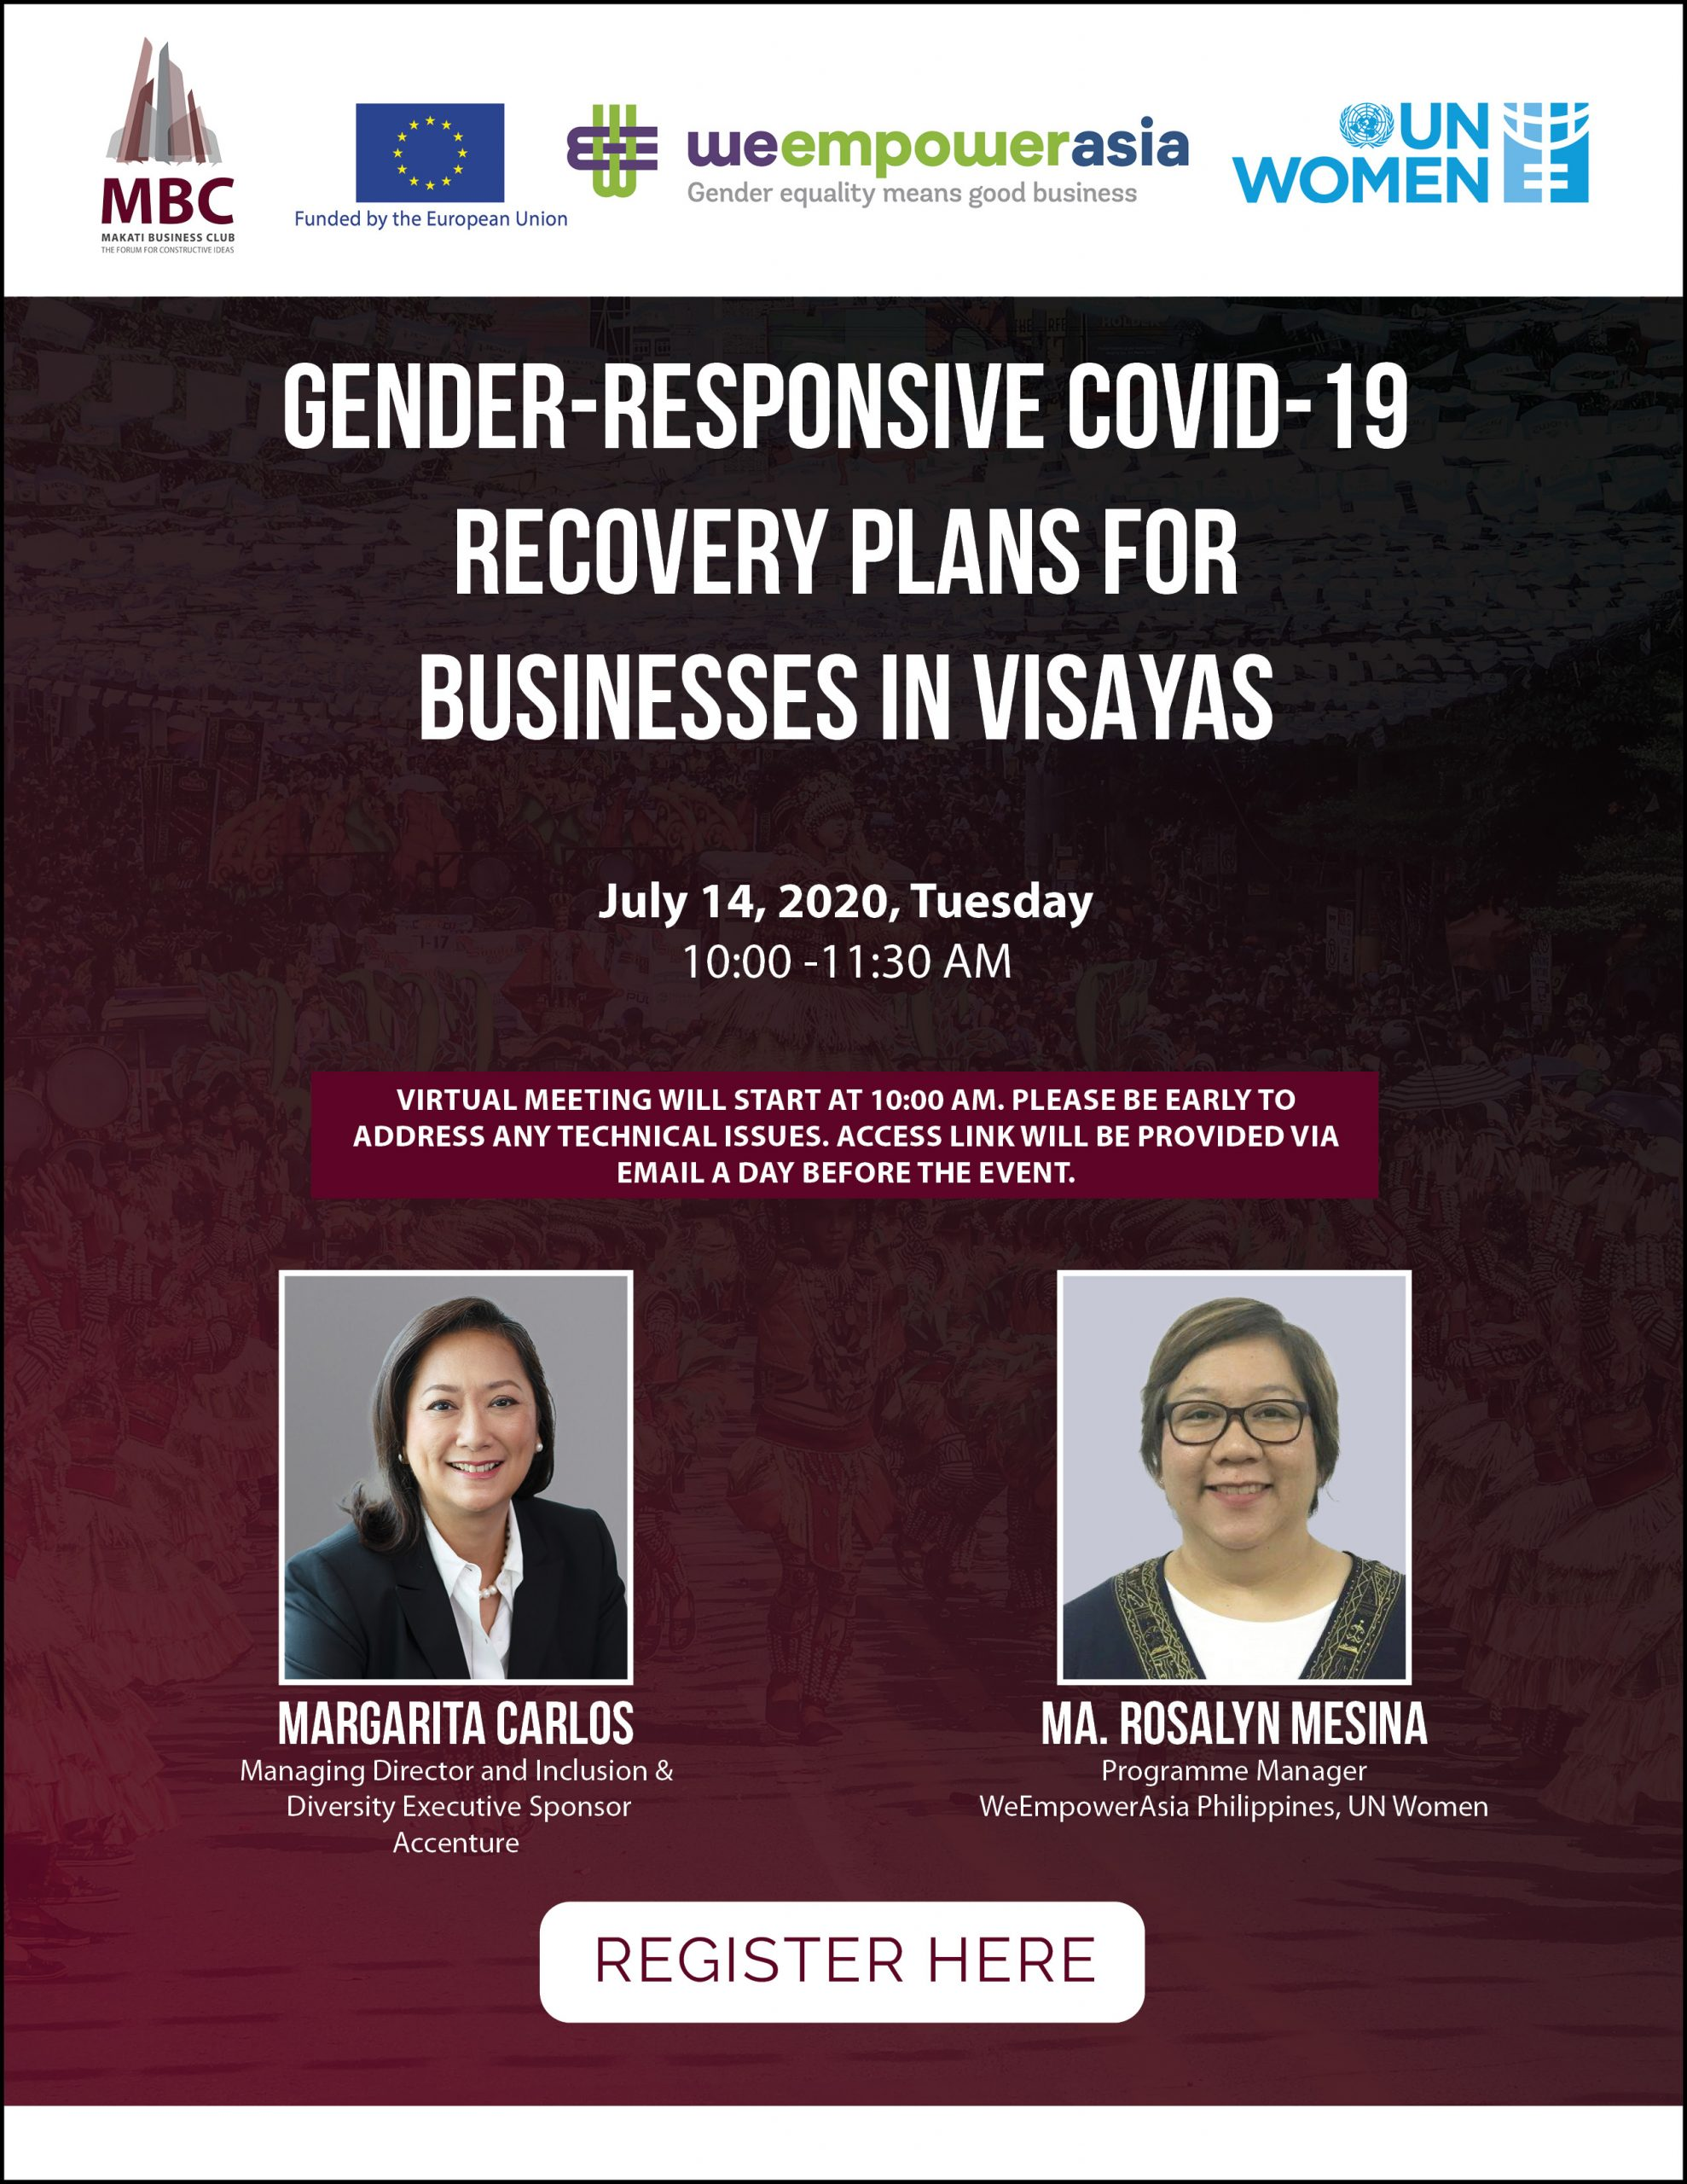 Gender-responsive COVID-19 Recovery Plans for Businesses in Visayas